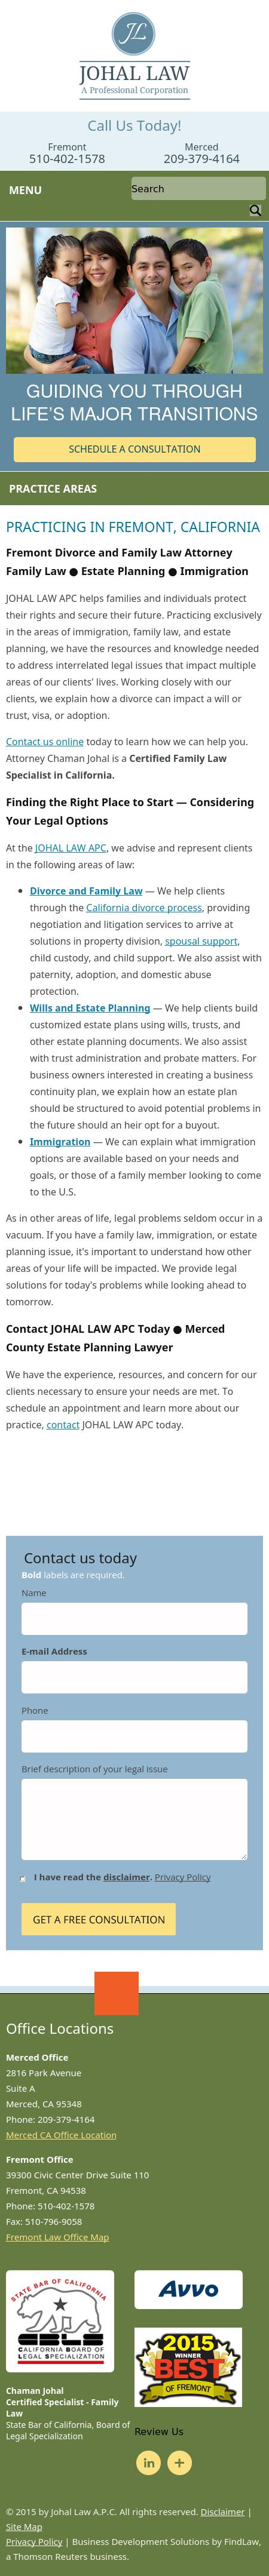 Johal Law A.P.C. - Fremont CA Lawyers